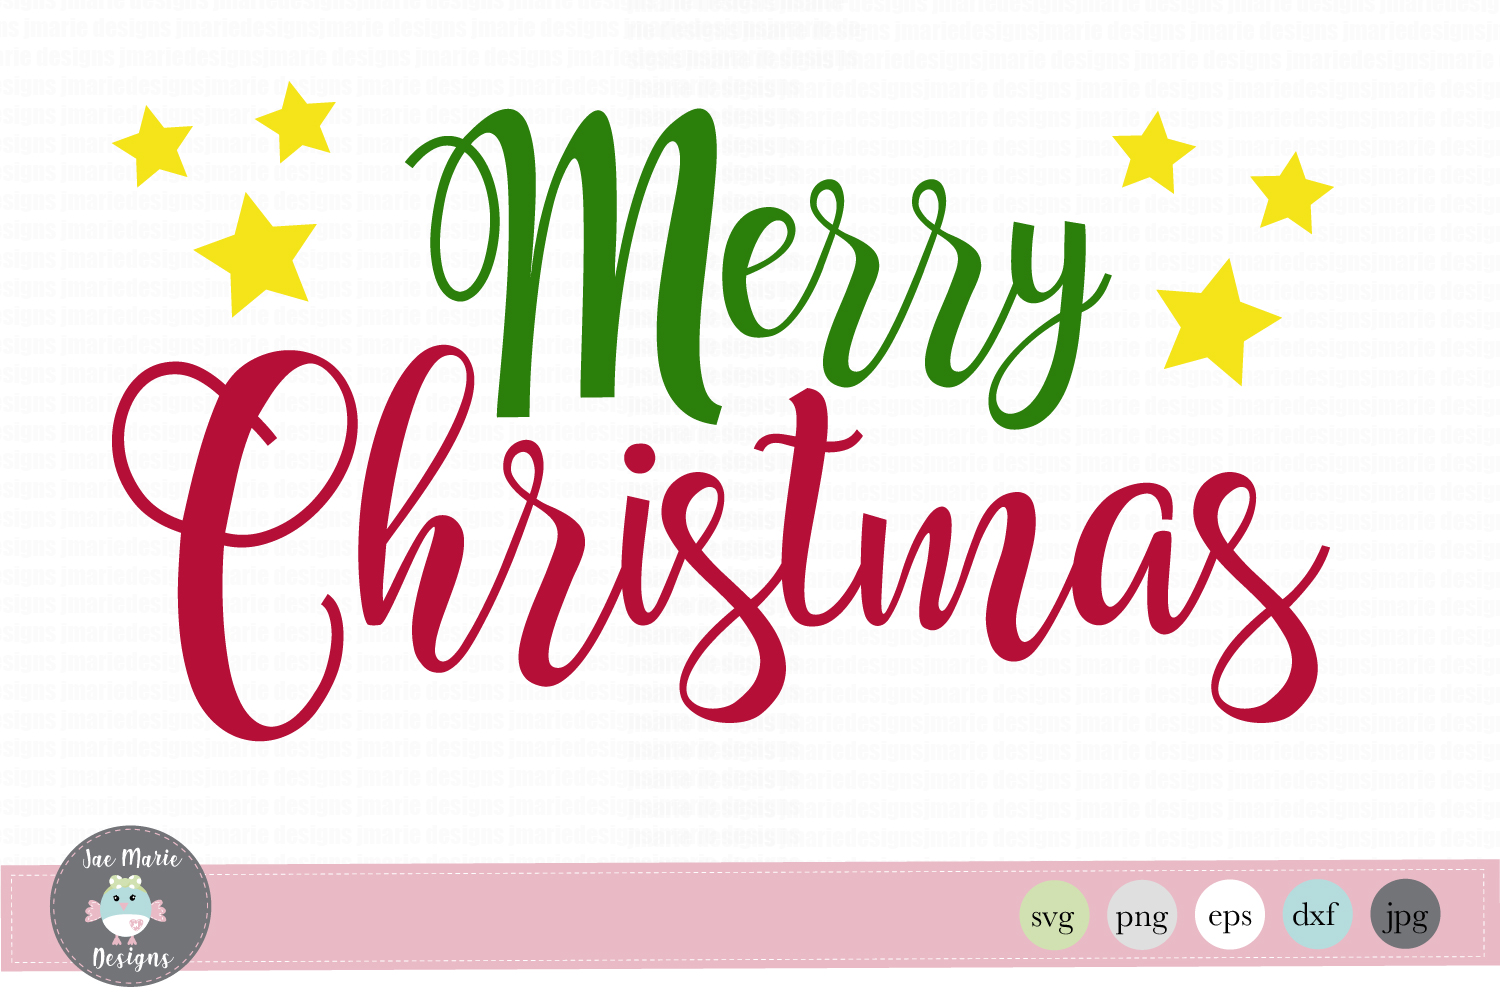 Download Free Merry Christmas Graphic By Thejaemarie Creative Fabrica for Cricut Explore, Silhouette and other cutting machines.